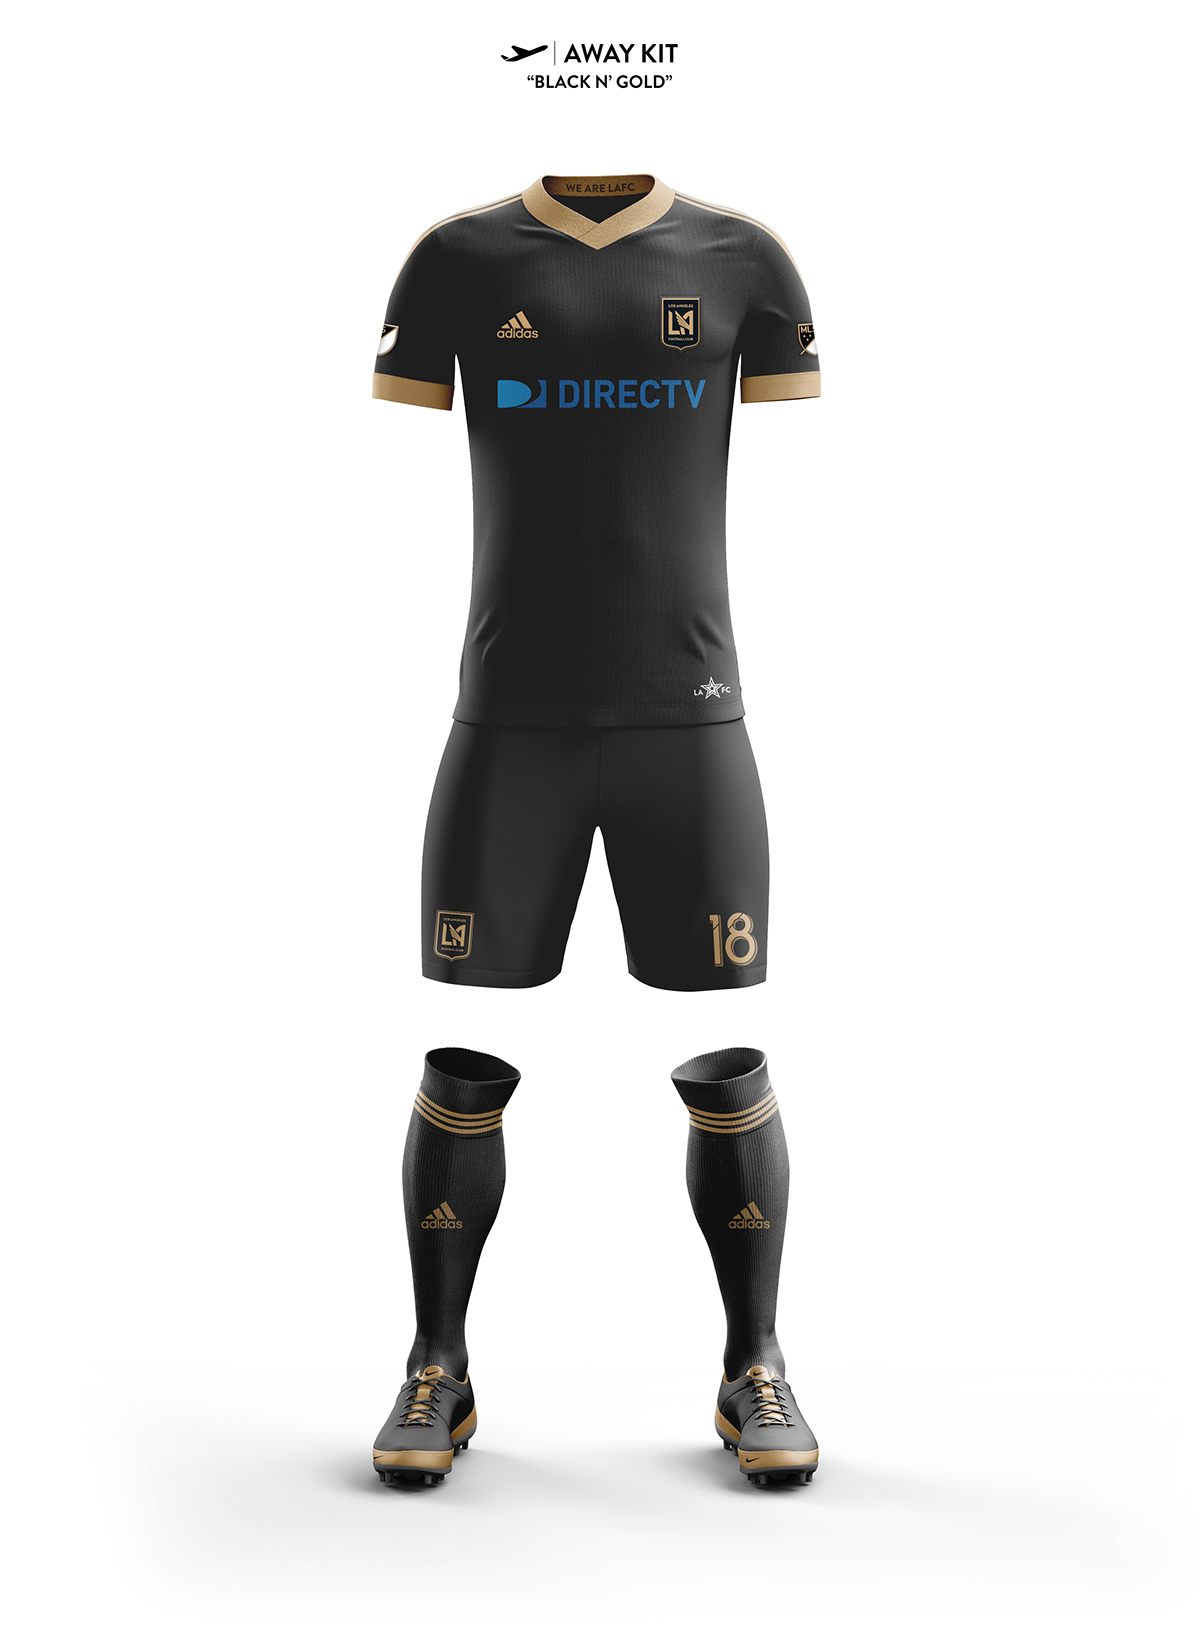 los angeles football club concept kits on behance